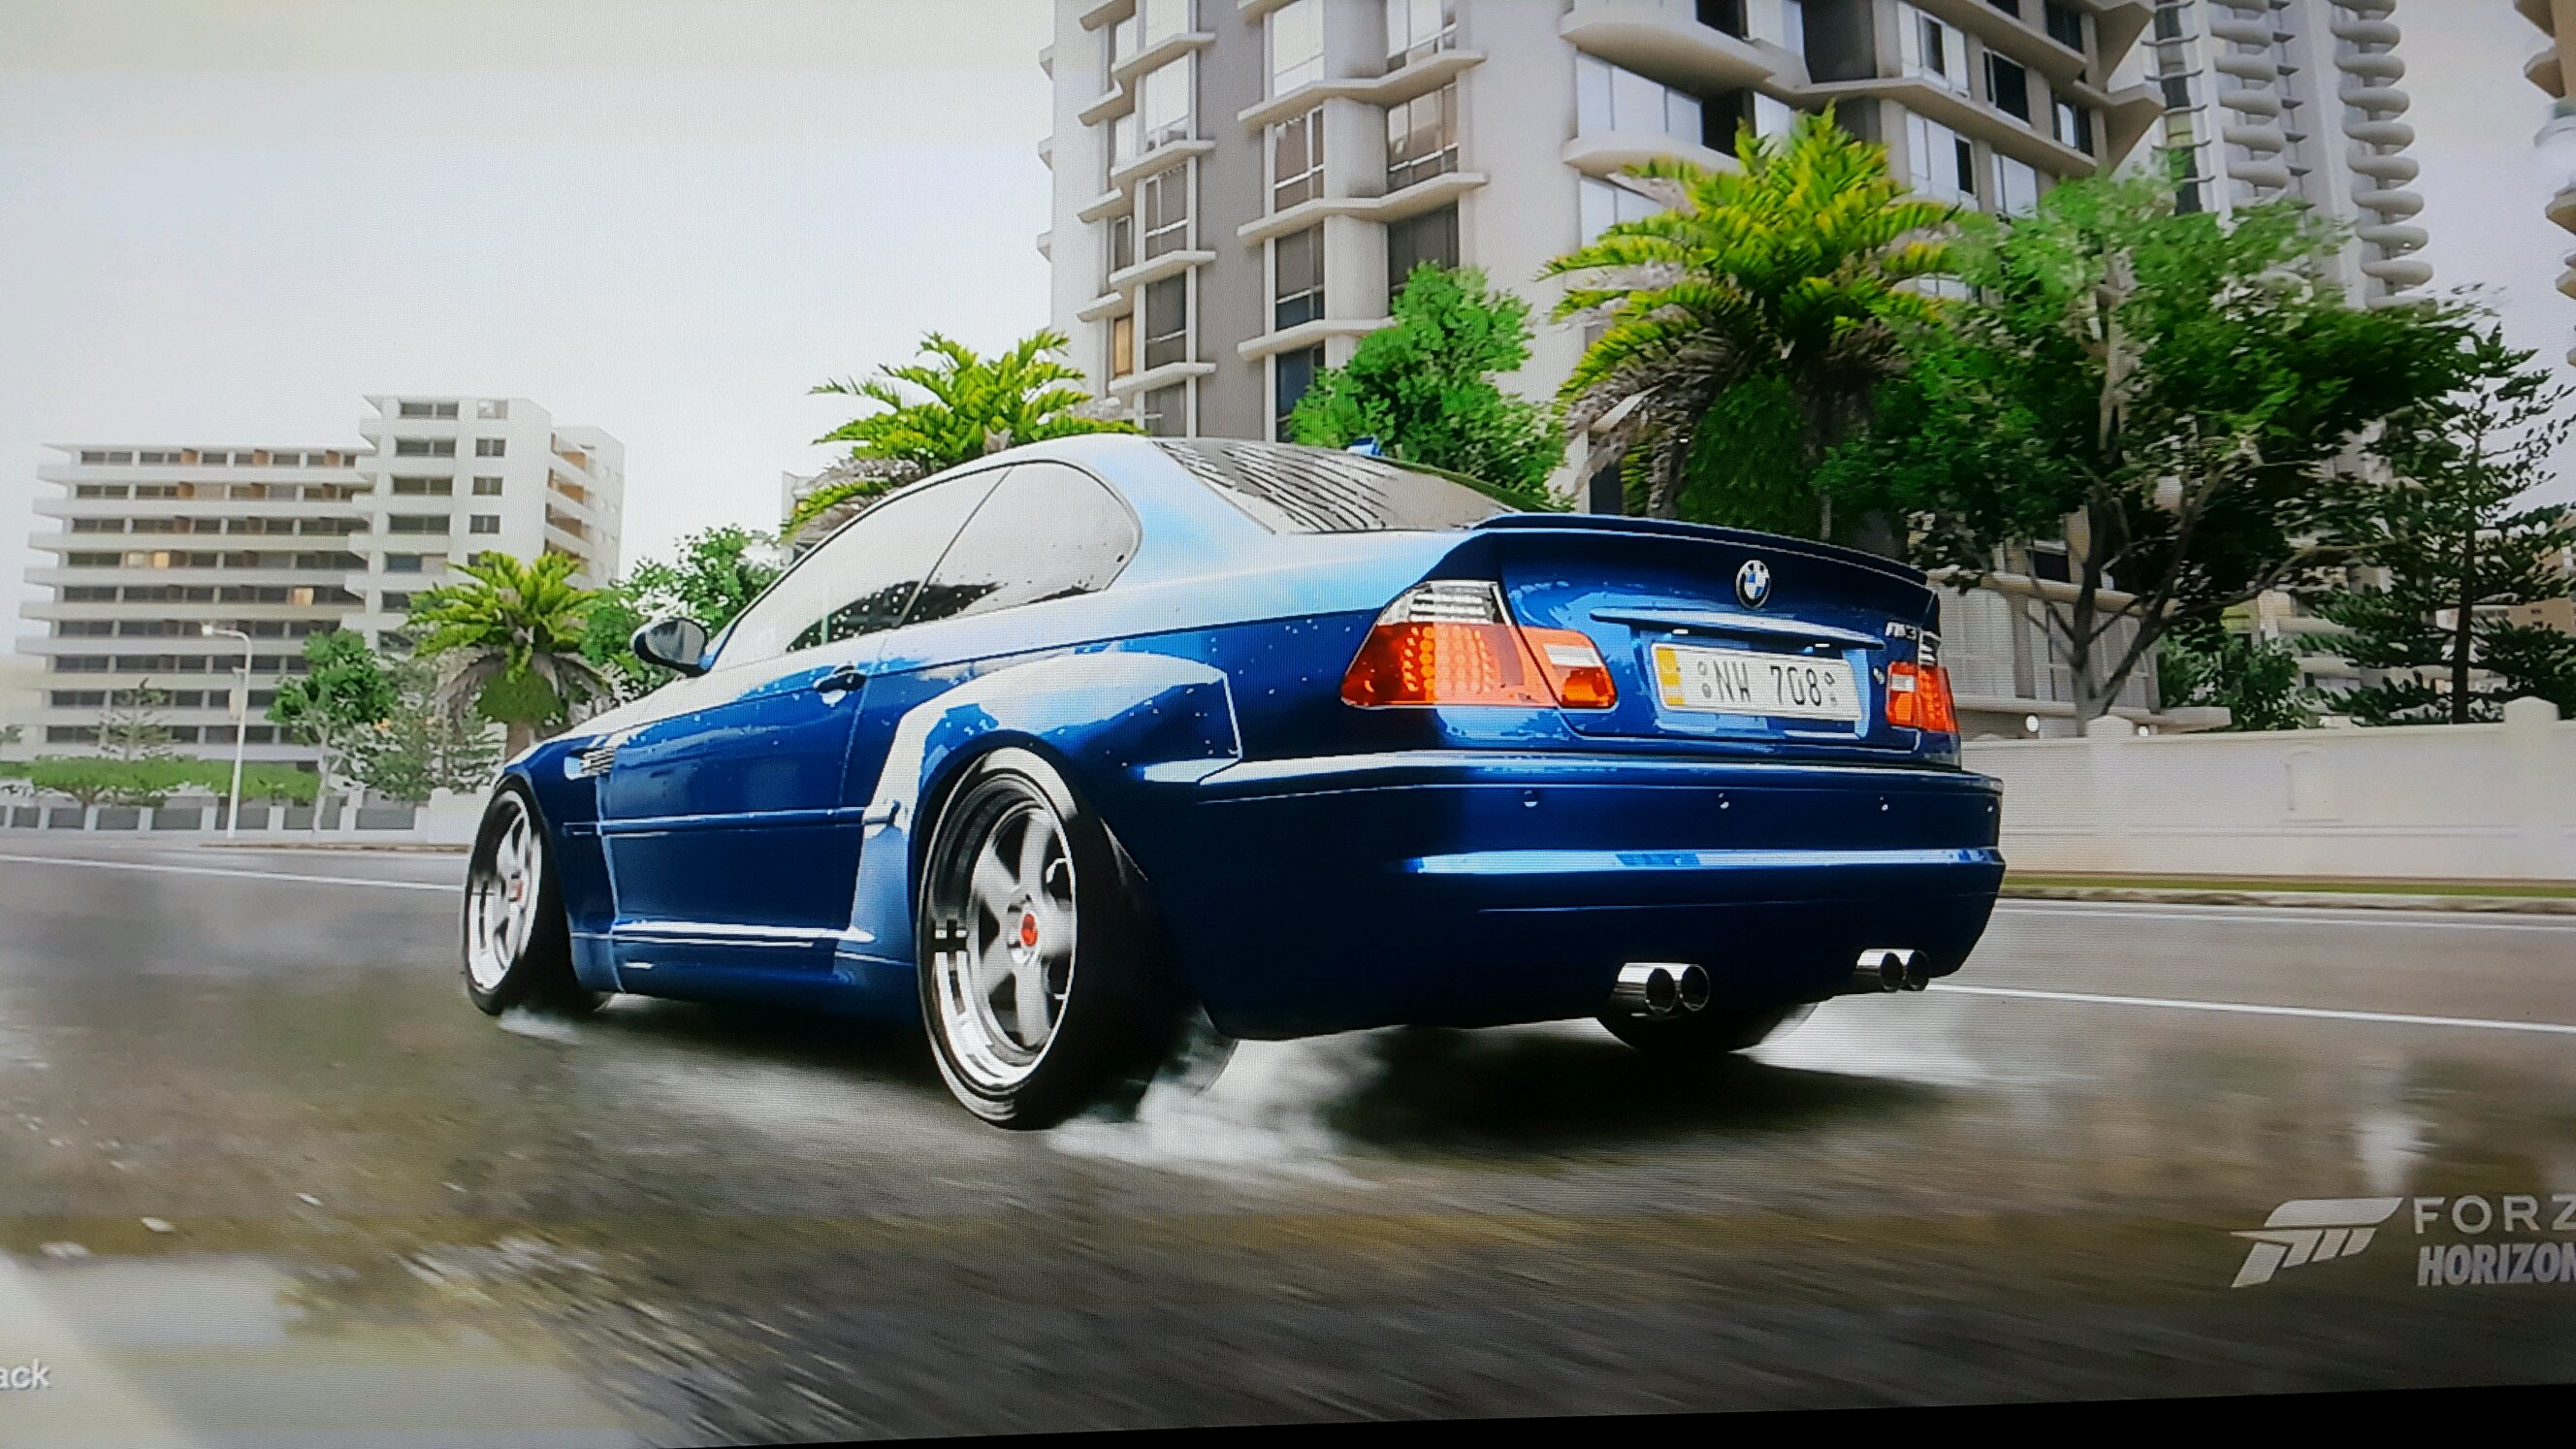 My Widebody Bmw E46 M3 In Forza Horizon 3 What Is Your